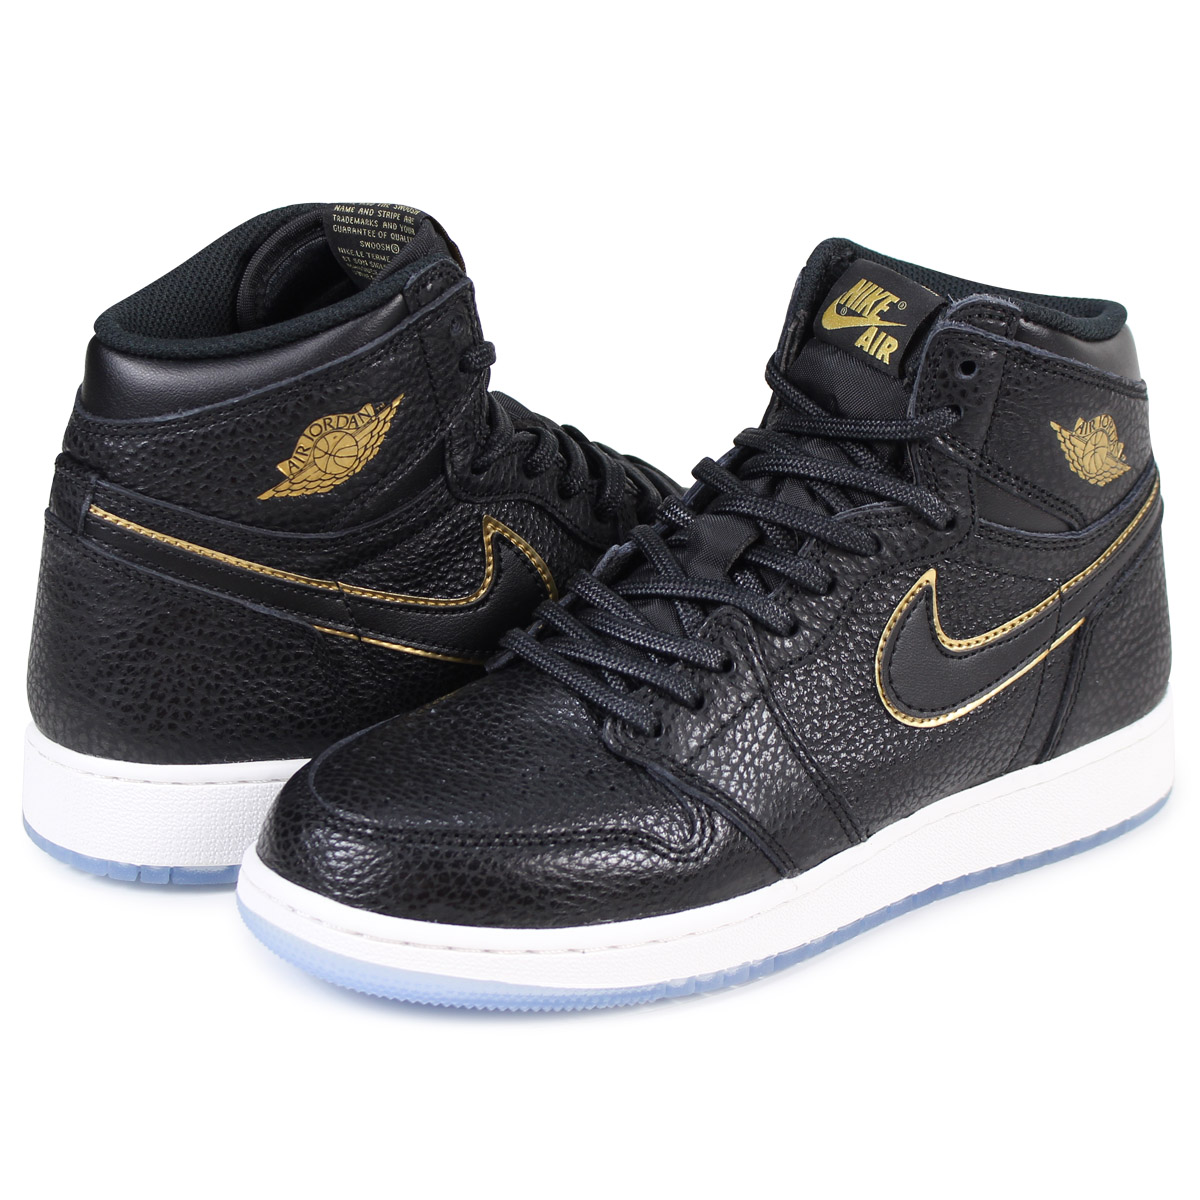 5fa715e9d4a4 NIKE AIR JORDAN 1 RETRO HIGH OG GS LA Nike Air Jordan 1 nostalgic Haile Dis  sneakers 575